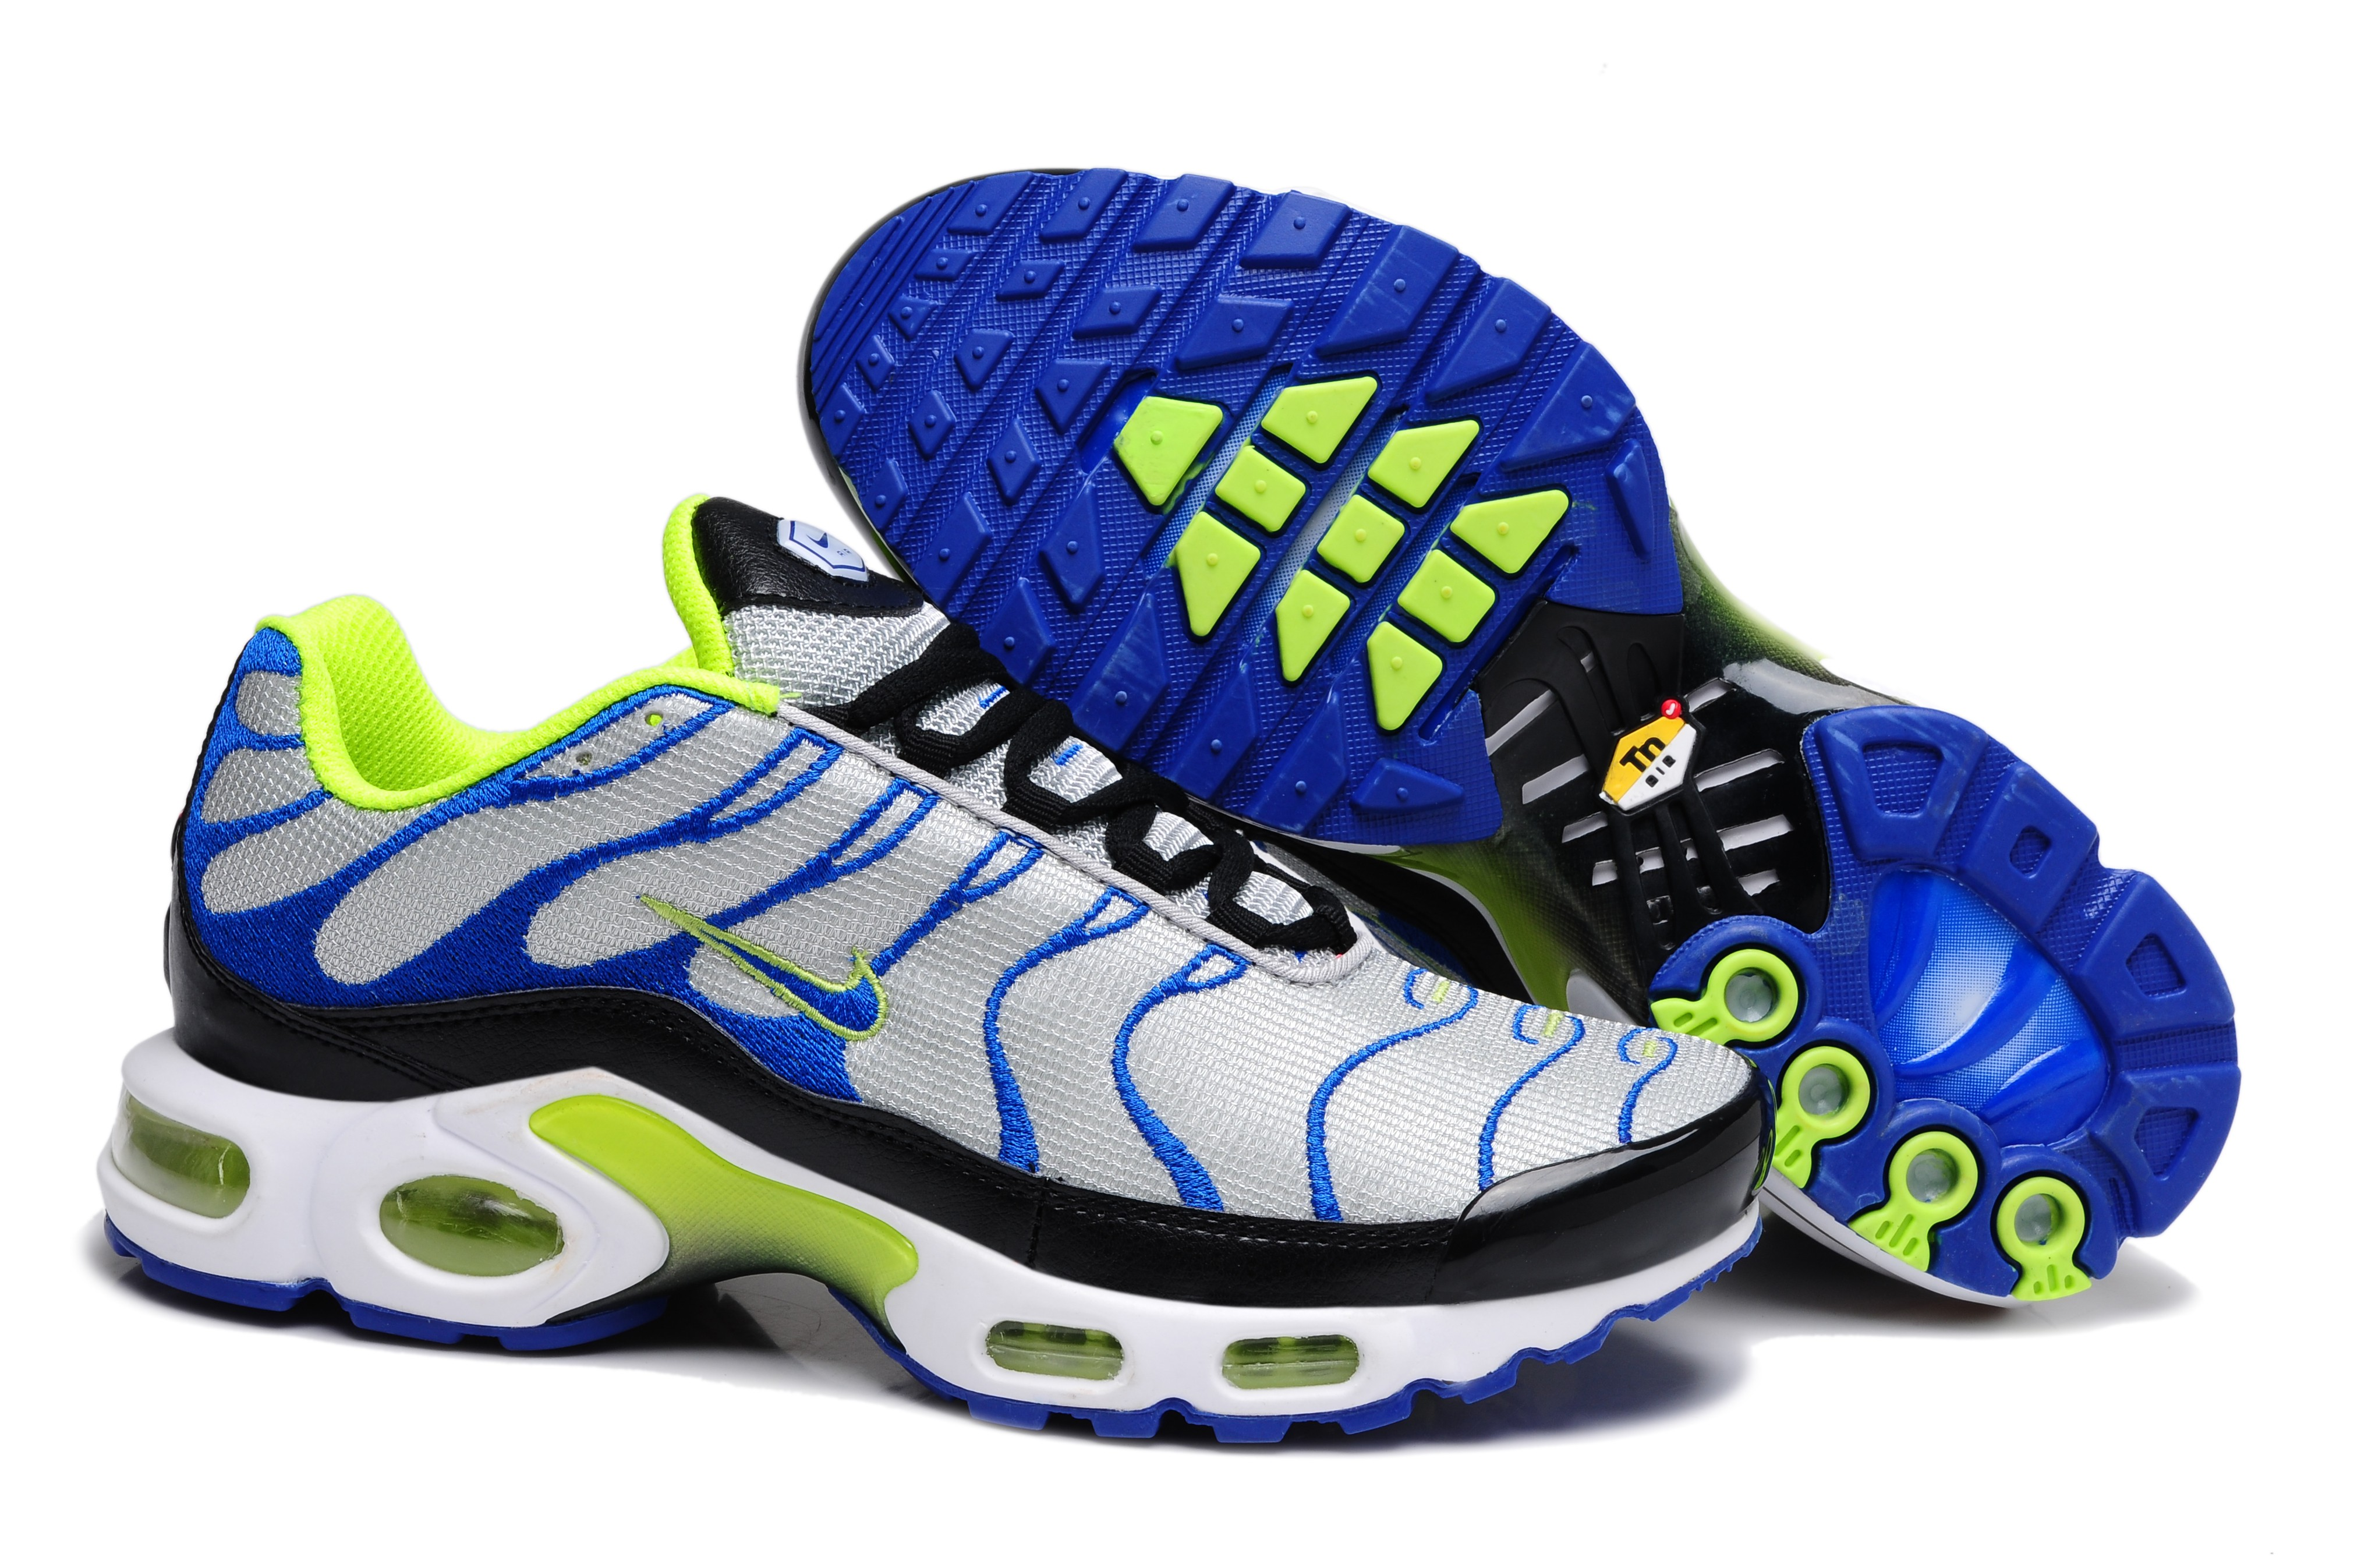 finest selection 602bc 774e5 air max tn requin pas cher chine